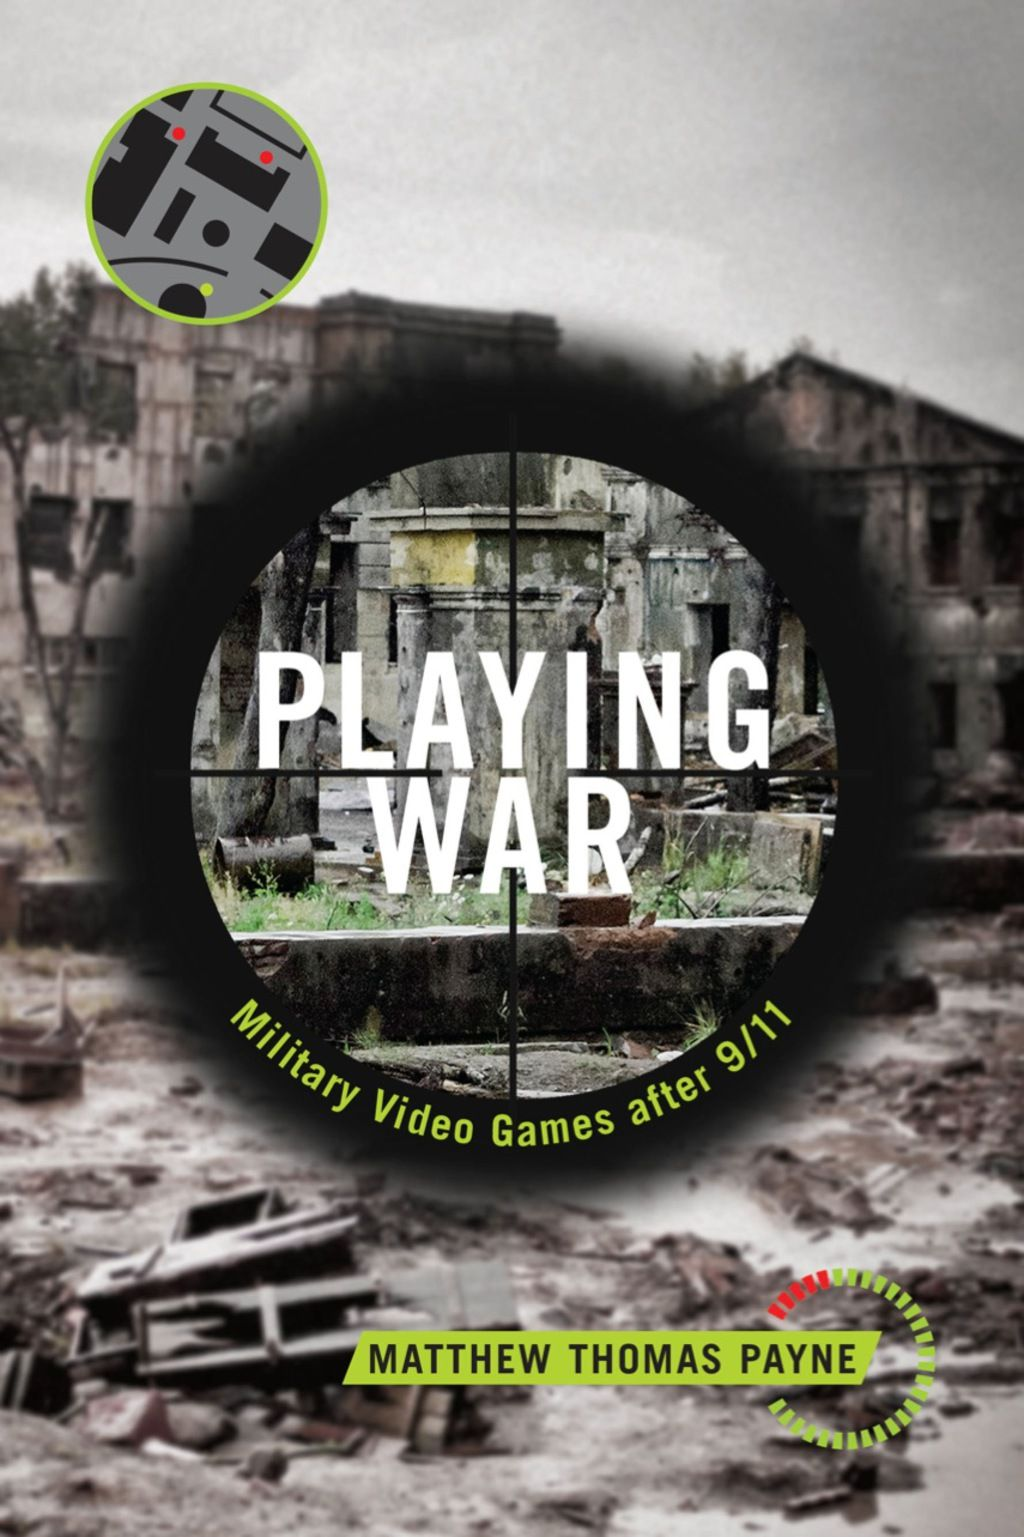 Playing War (eBook) Military videos, Video games, War